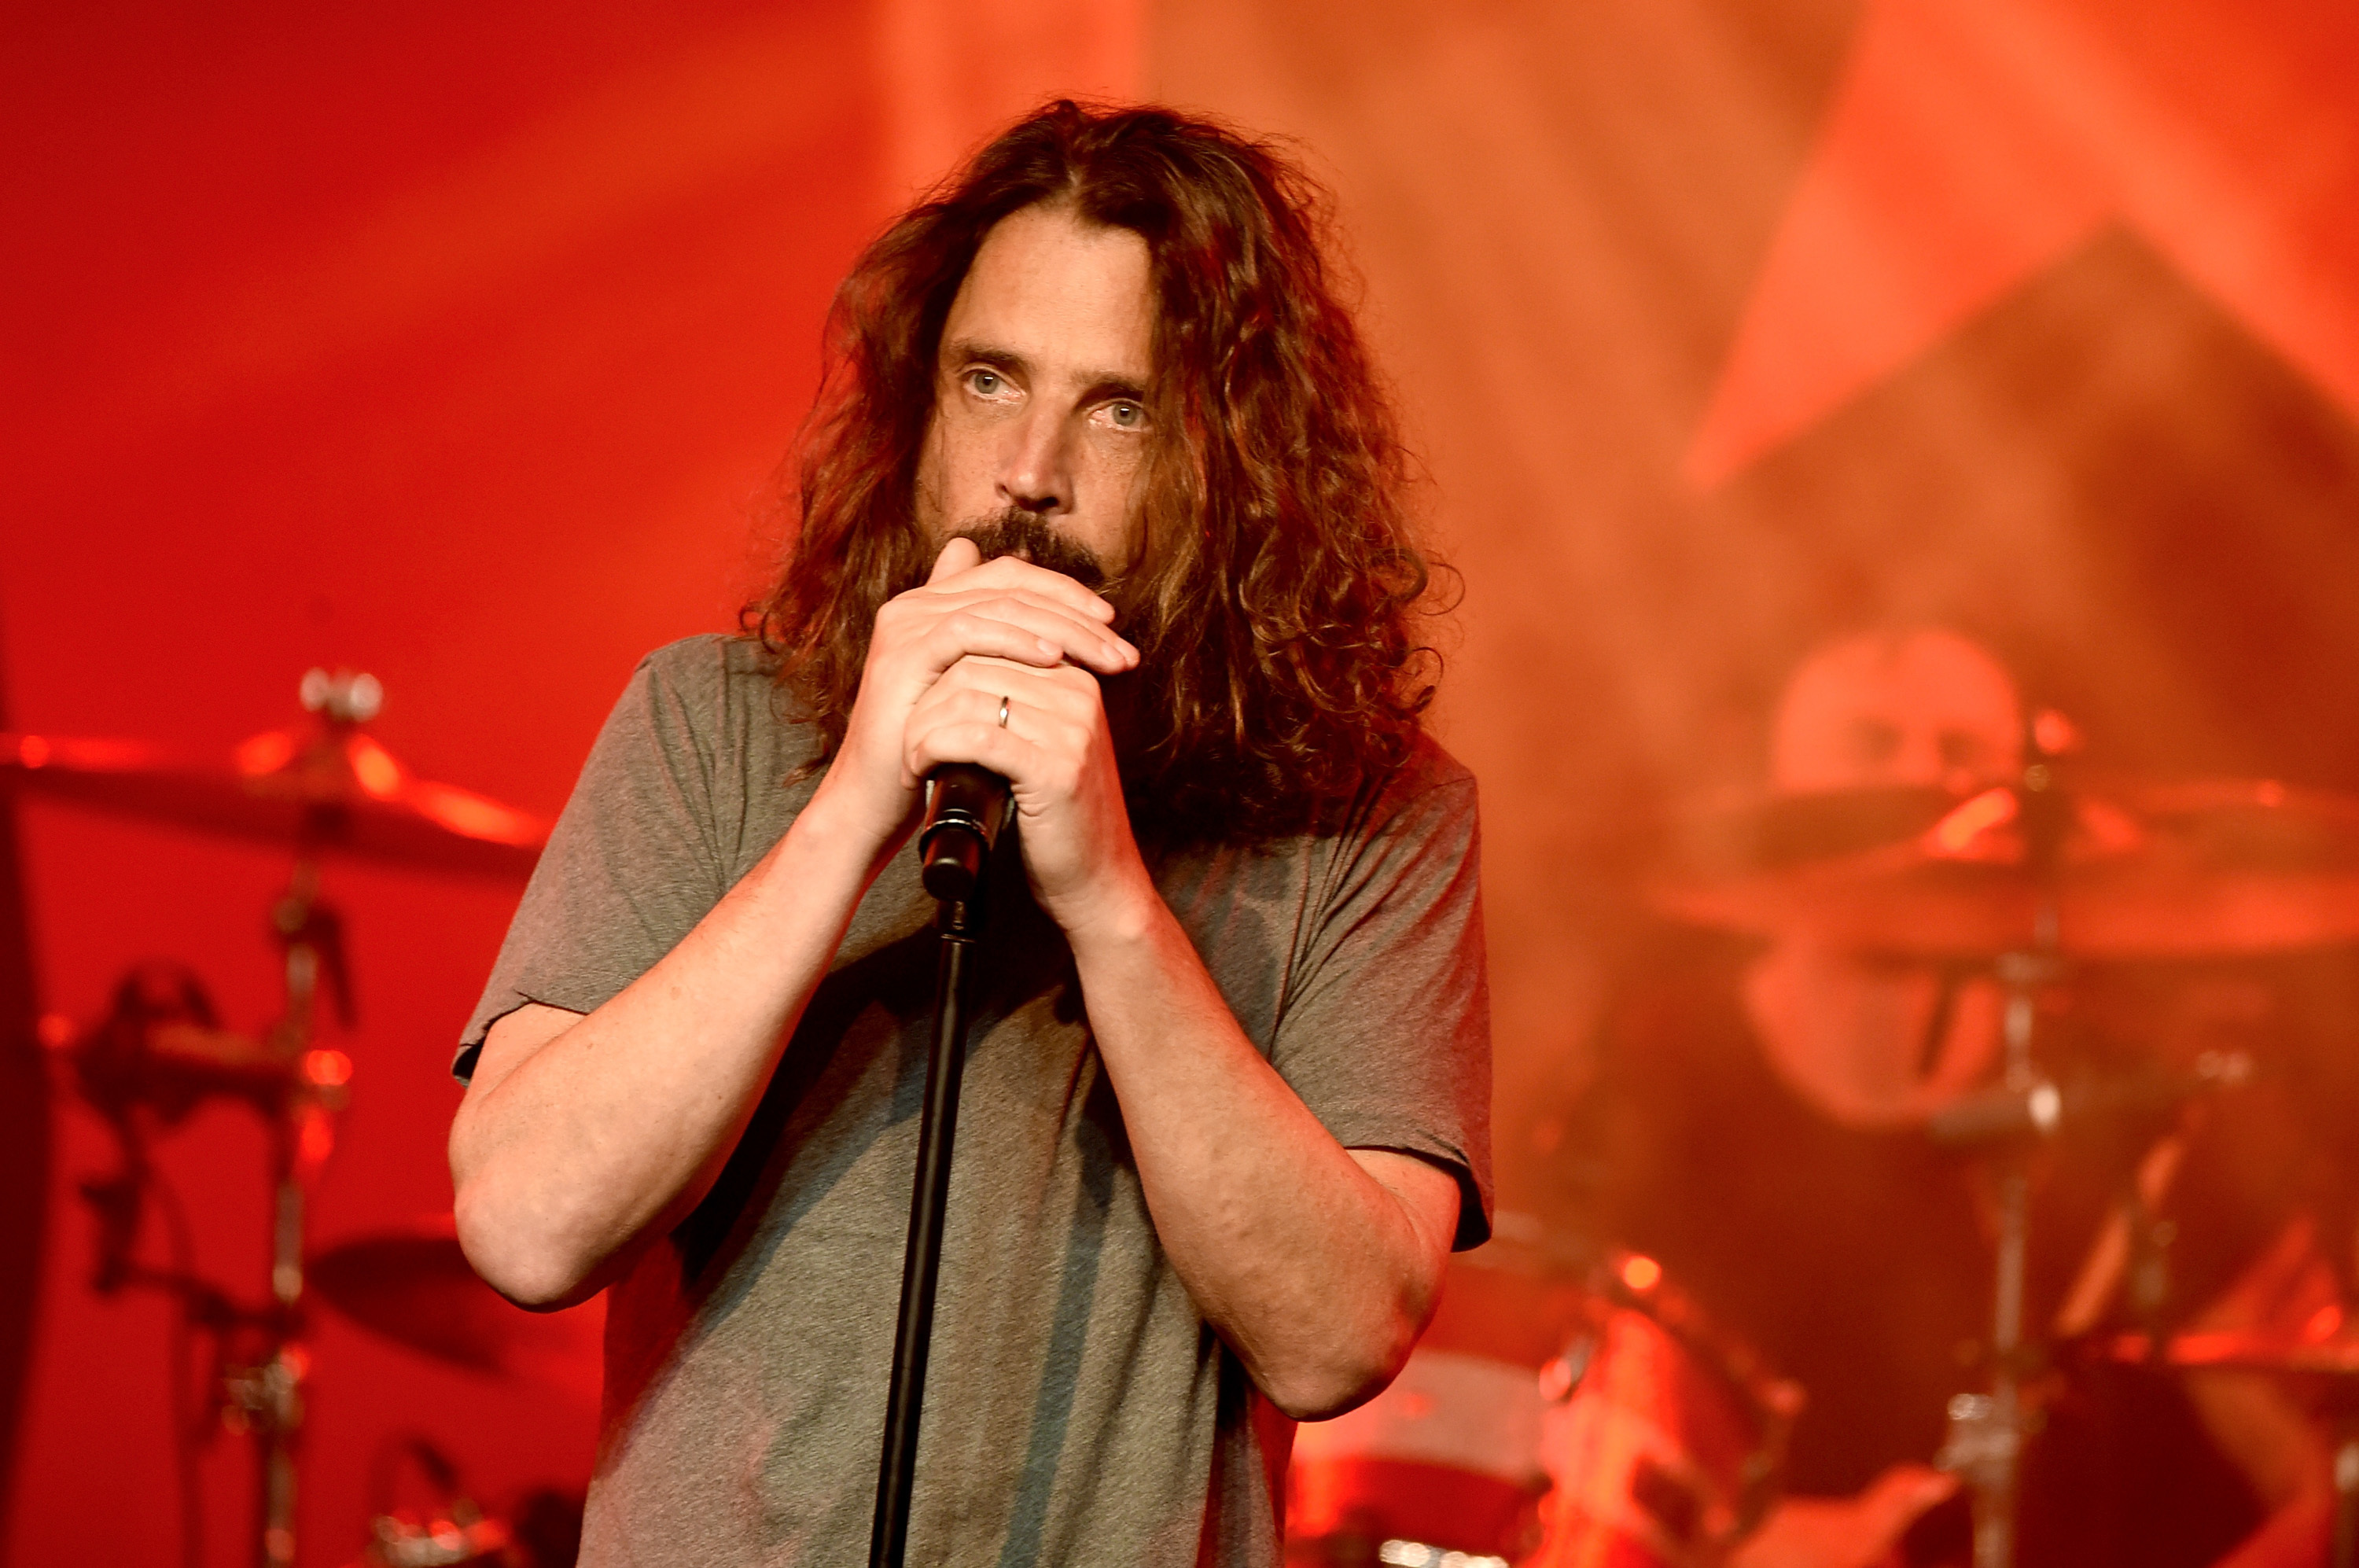 Soundgarden singer Chris Cornell dies at age 52 in Detroit